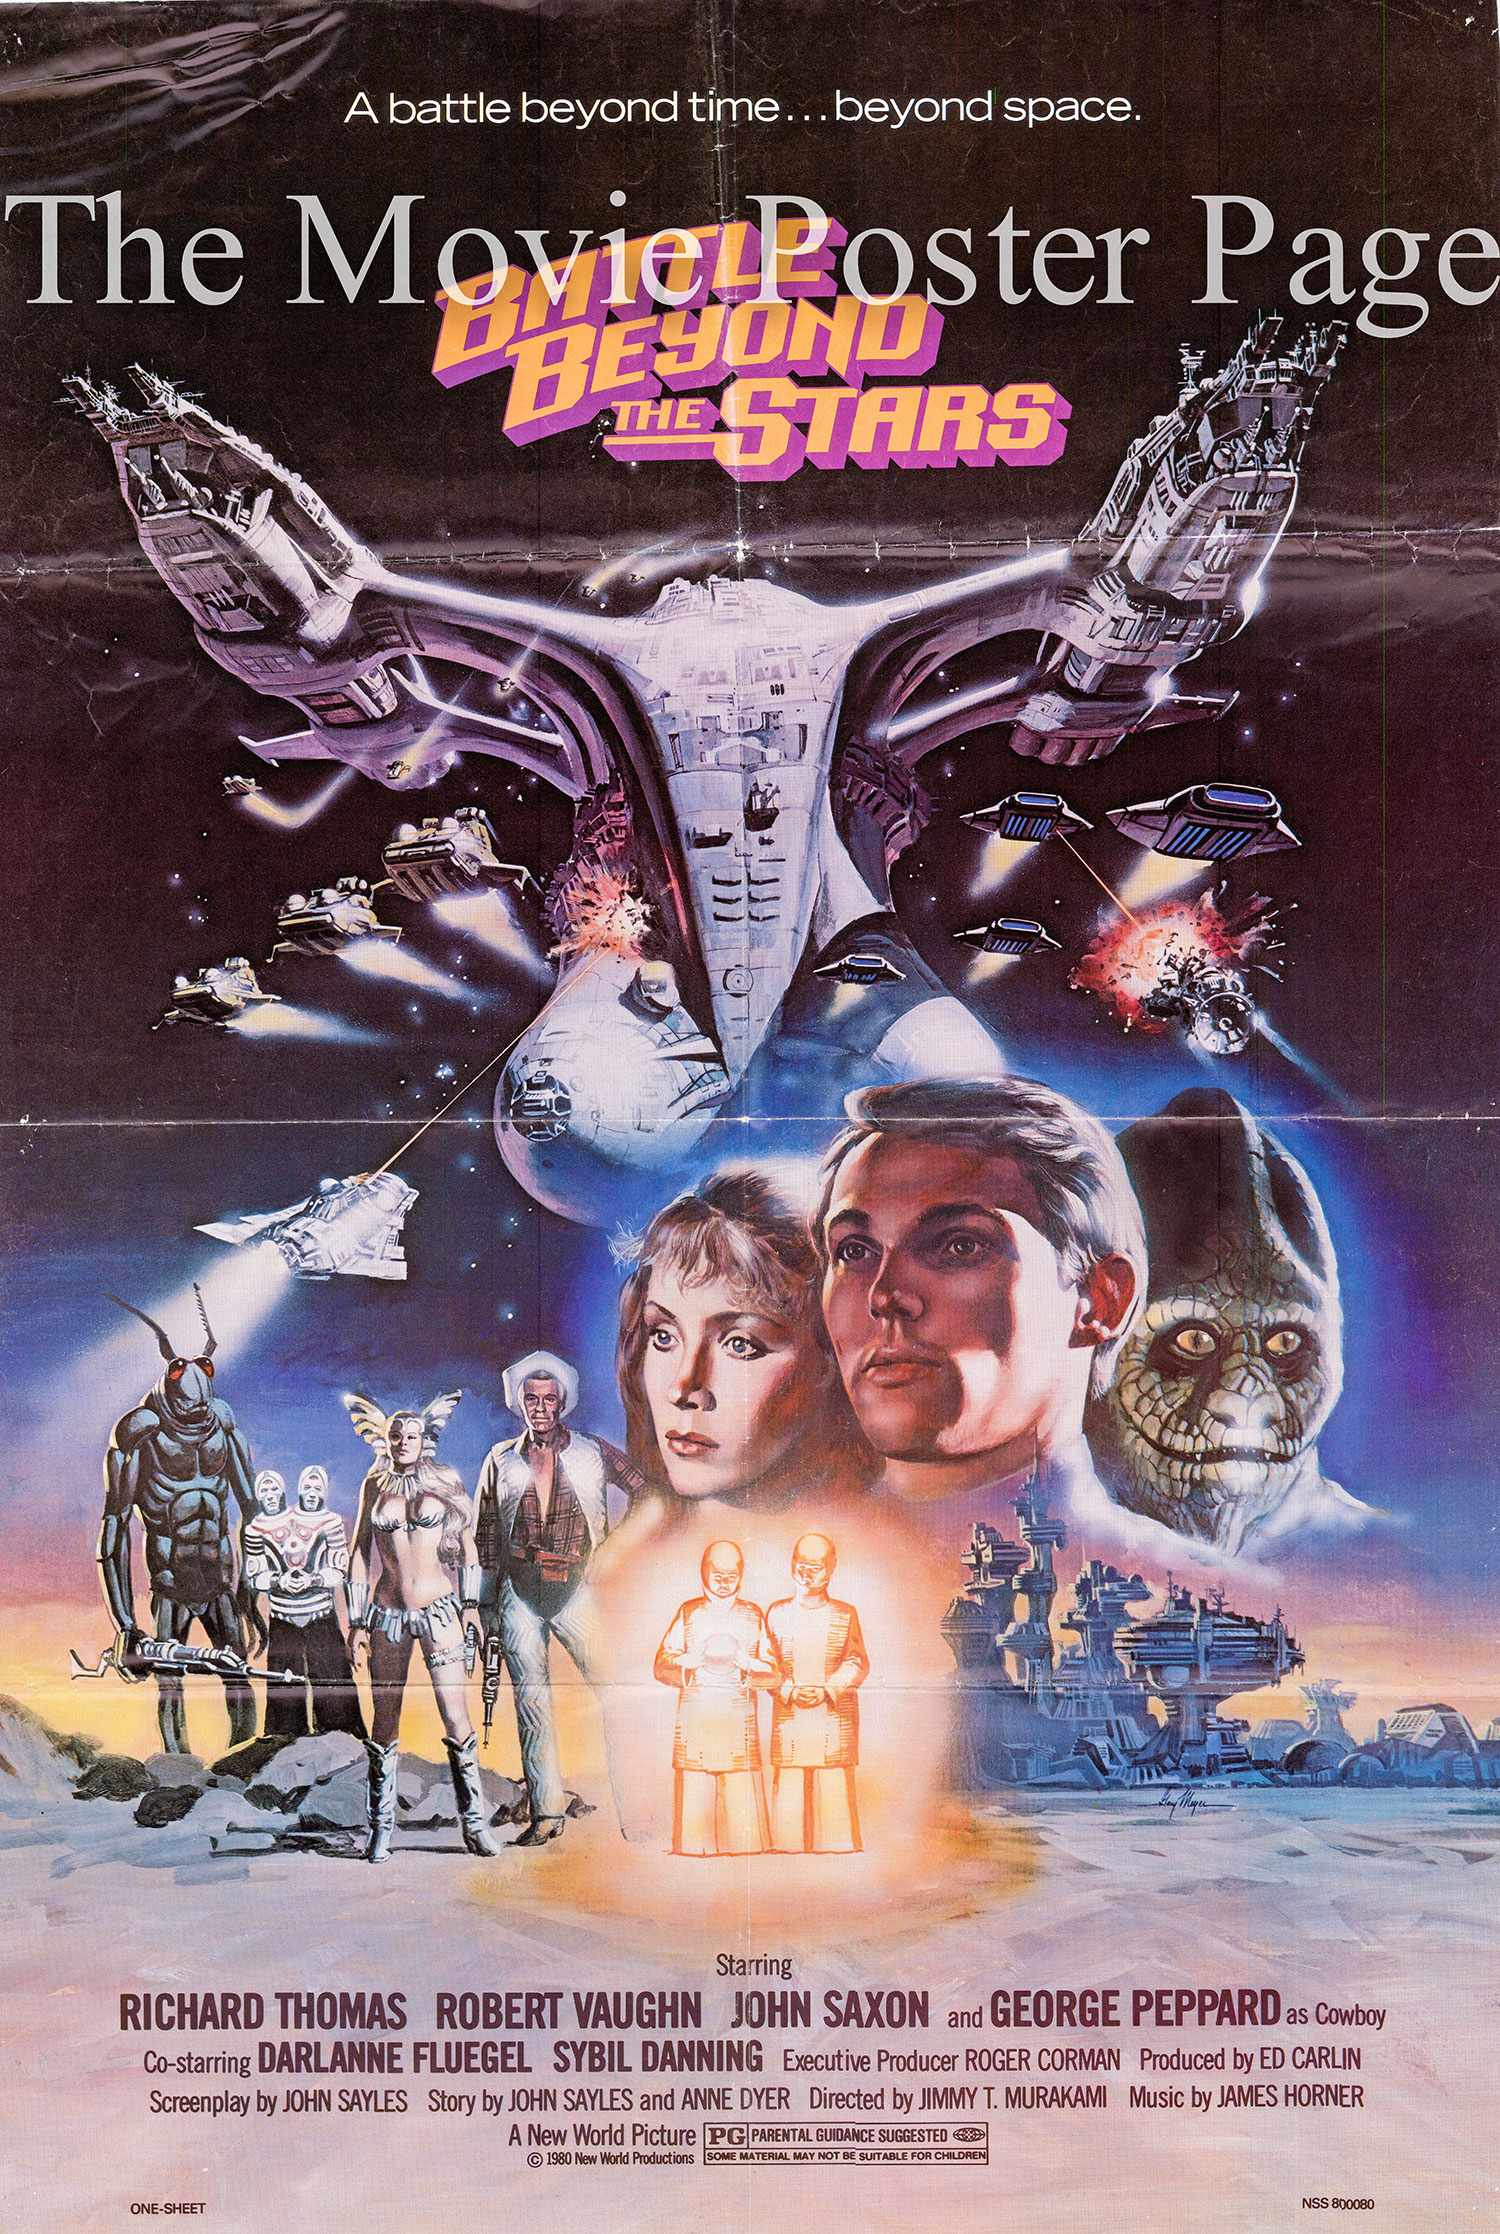 Pictured is a US one-sheet poster for the 1980 Jimmy T. Murakami film Battle Beyond the Stars starring Richard Thomas.